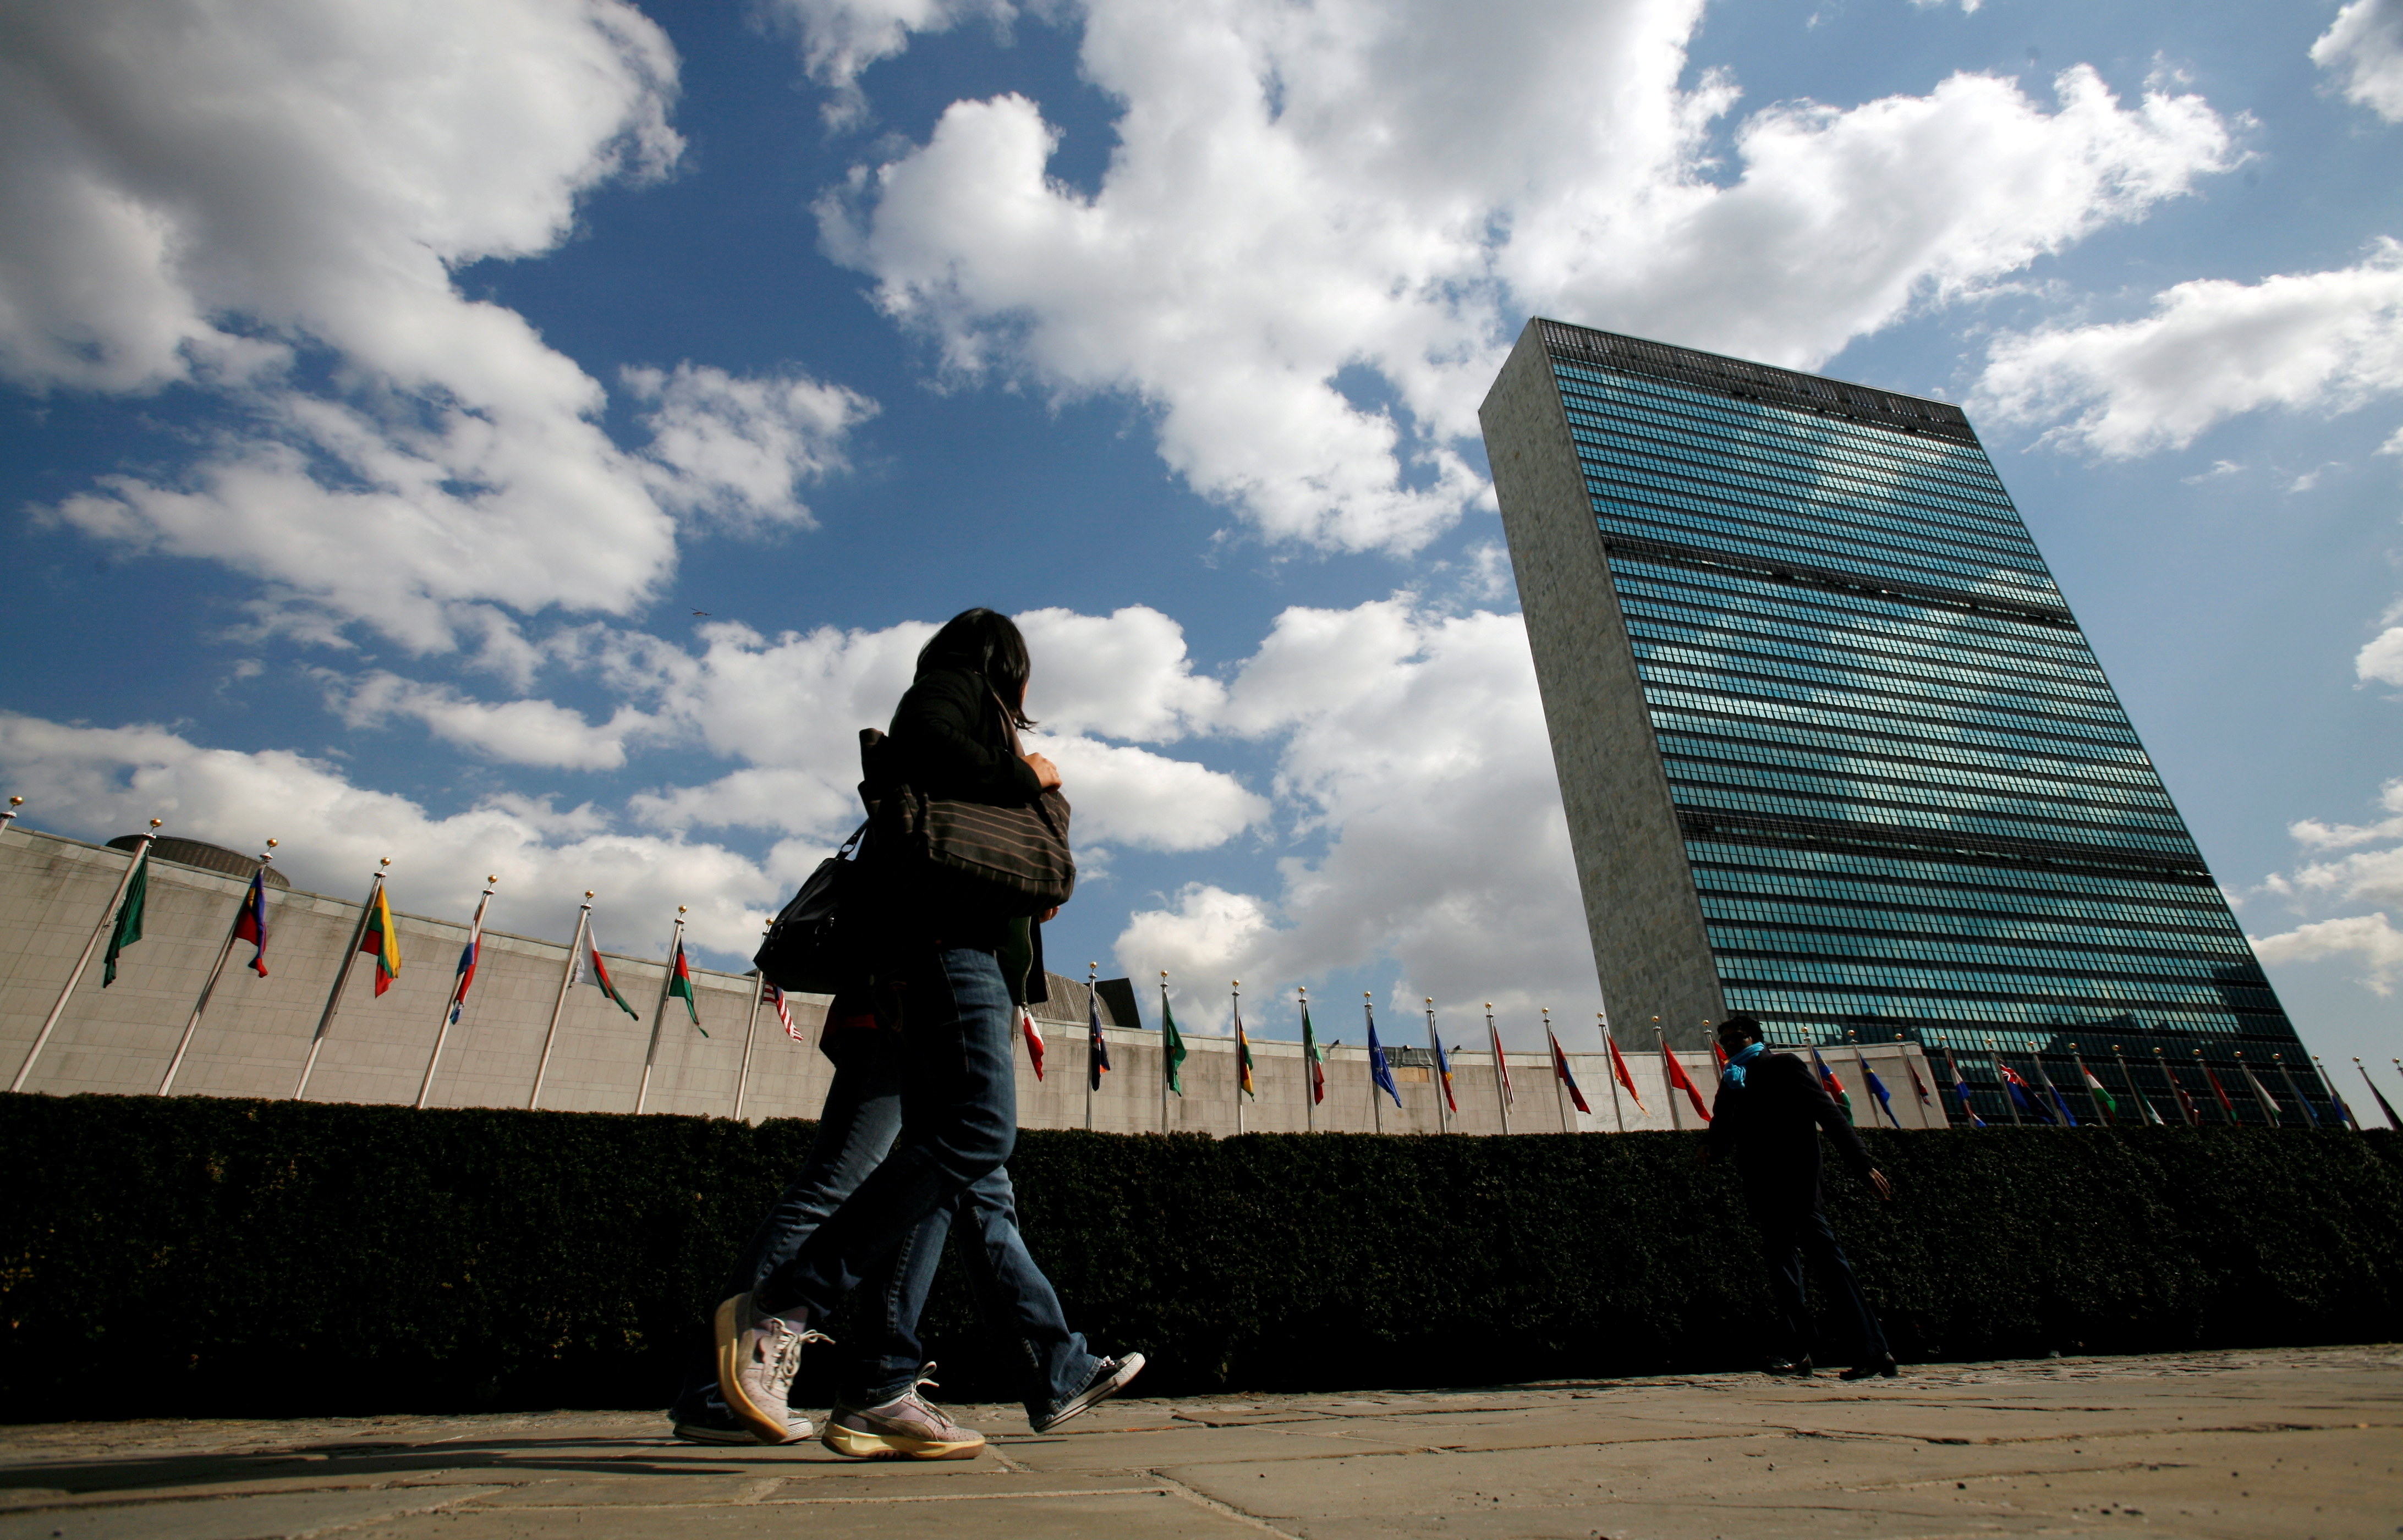 Tourists walk past the United Nations Headquarters in New York, March 24, 2008. At left is the U.N. General Assembly building and at right is the U.N. Secretariat building. REUTERS/Mike Segar